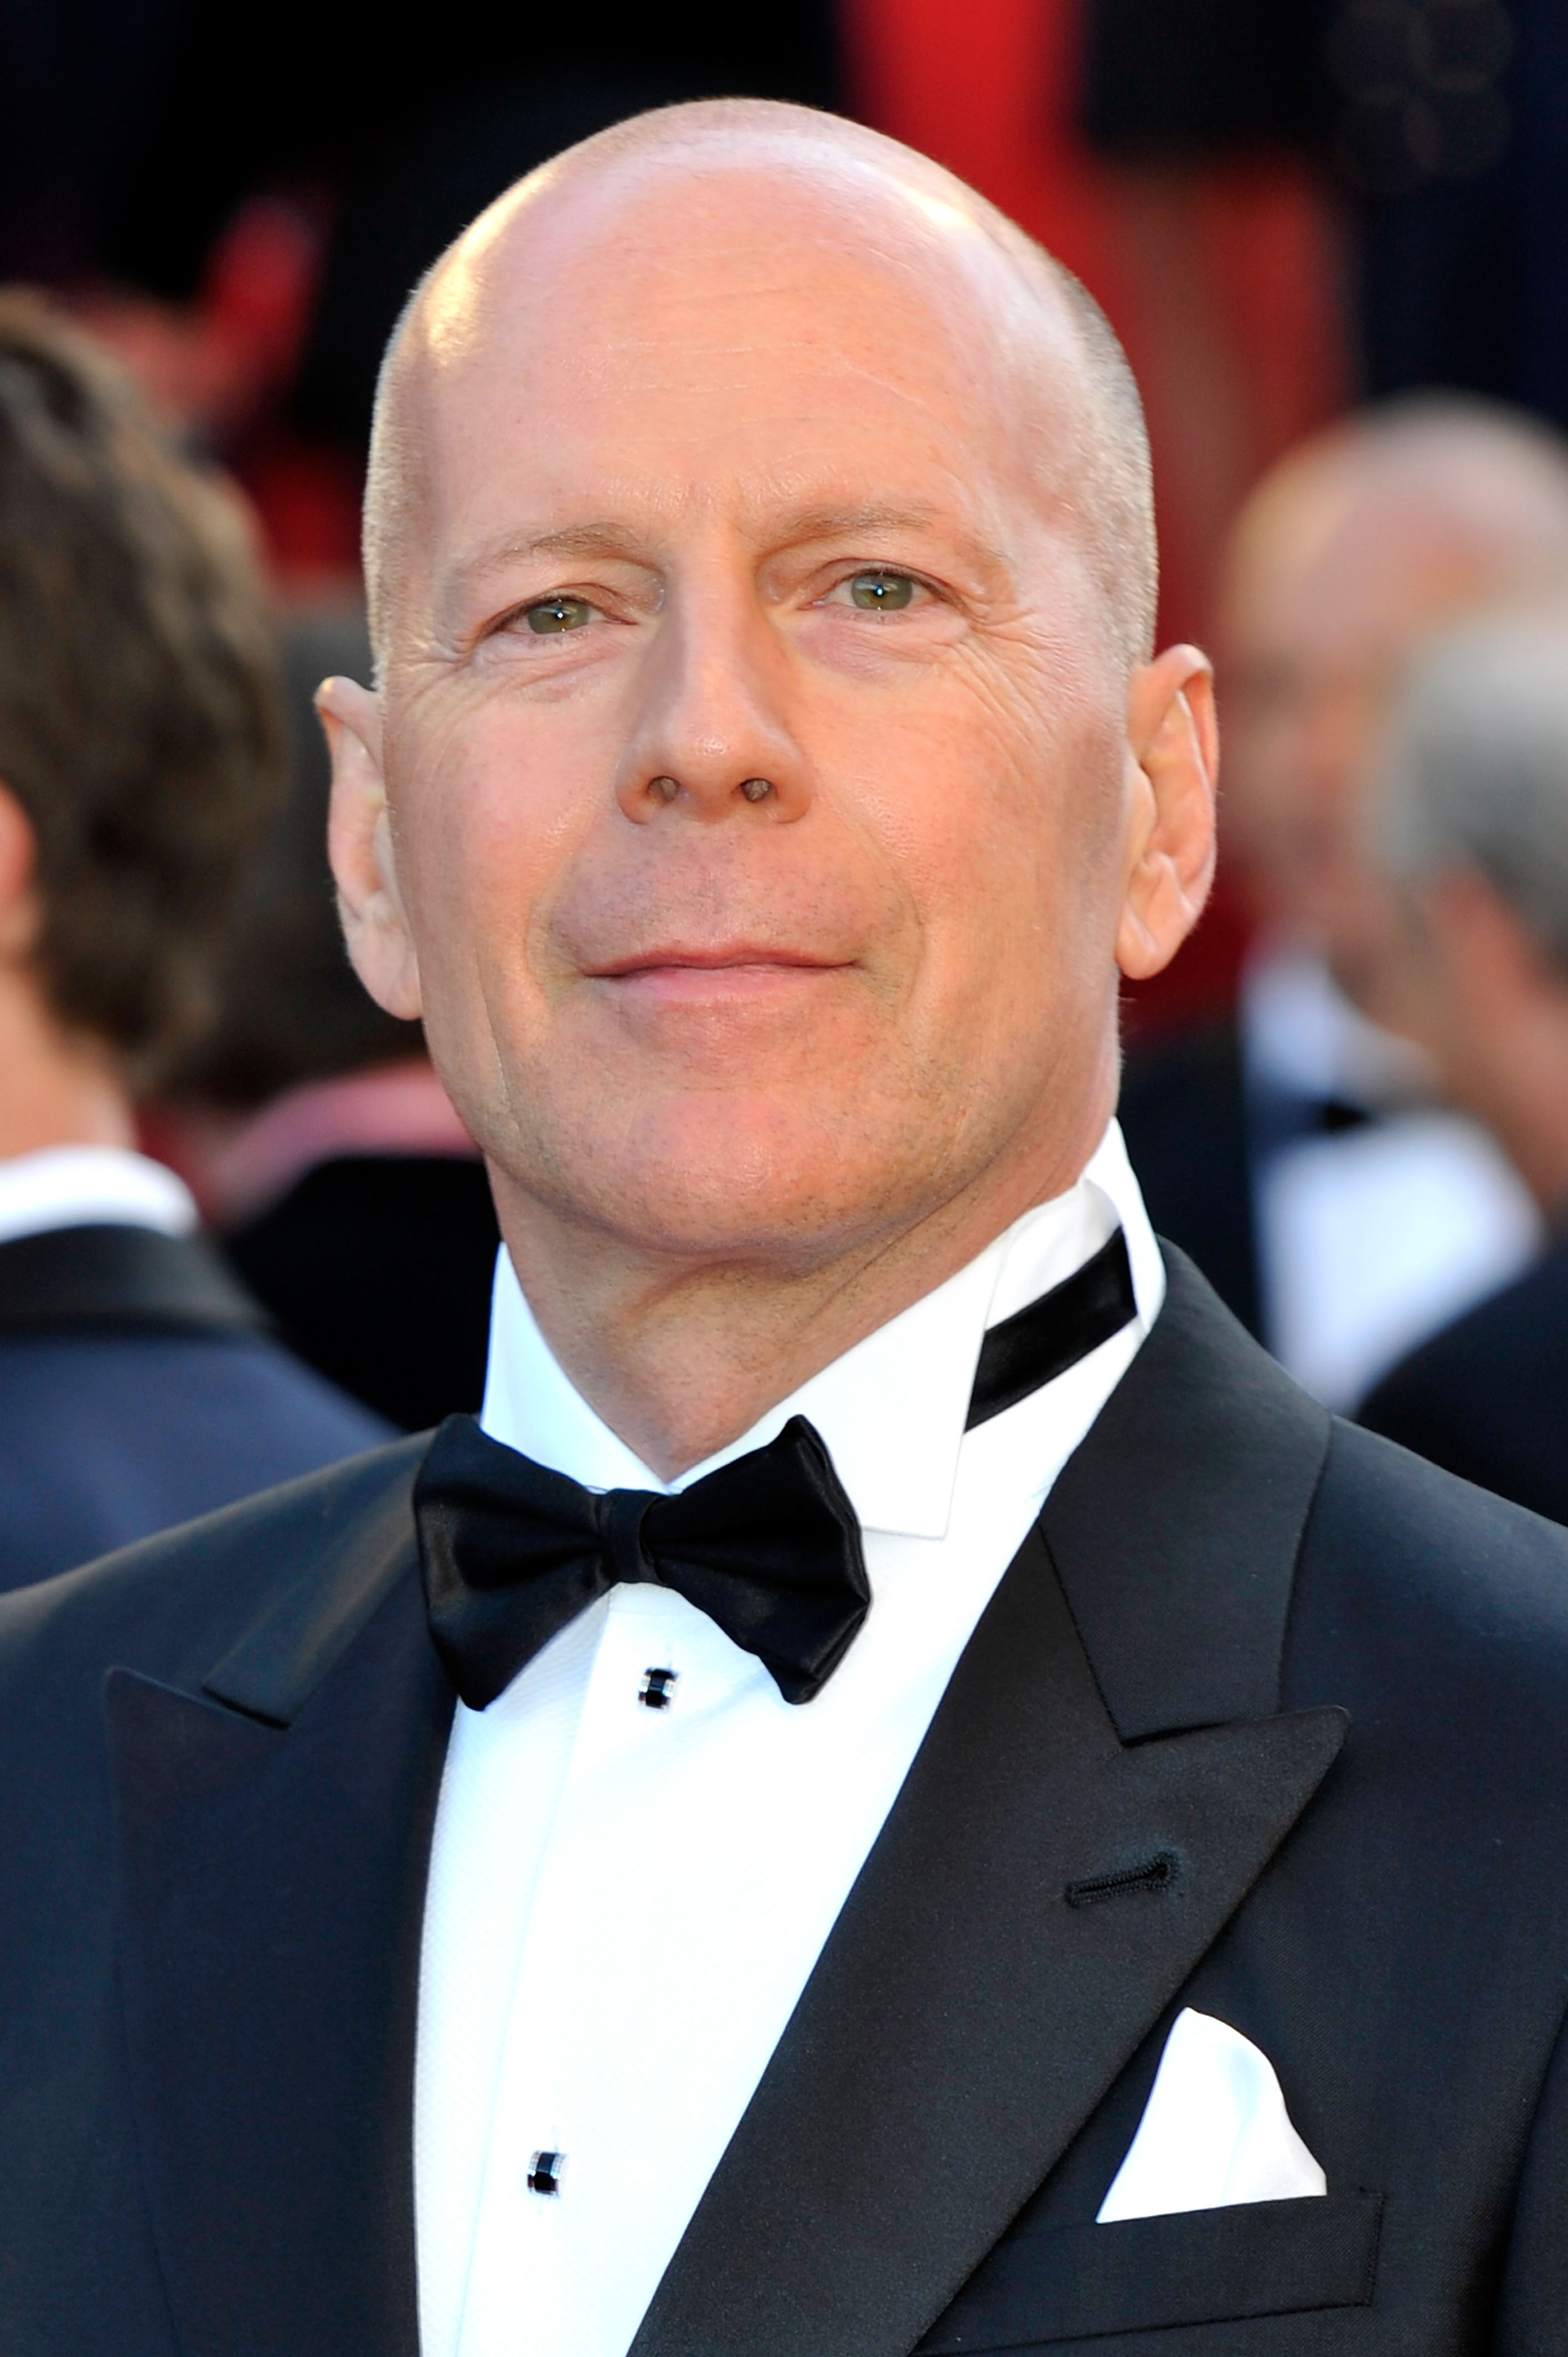 Bruce-Willis-celebs-in-Family-Guy-Getty